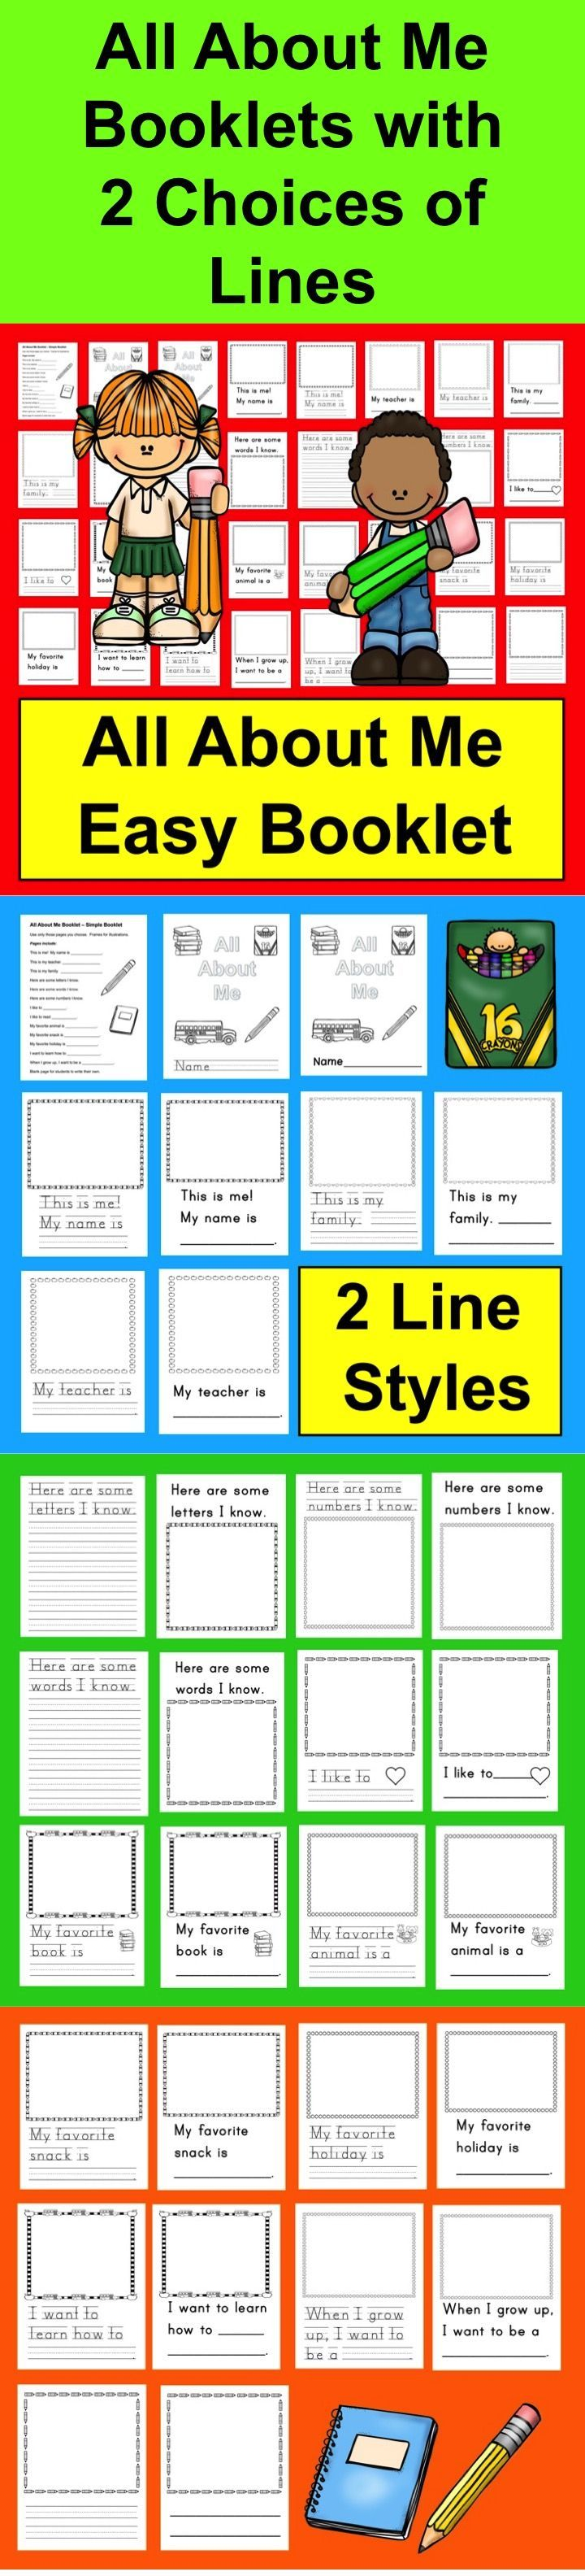 $ All About Me Booklet  ★ 2 Versions: Simple Lines & Skip Count Baselines  ★ Simple All About Me Booklet  ★ Use only those pages you choose for your All About Me Booklet.   ★ All About Me Frames for illustrations.